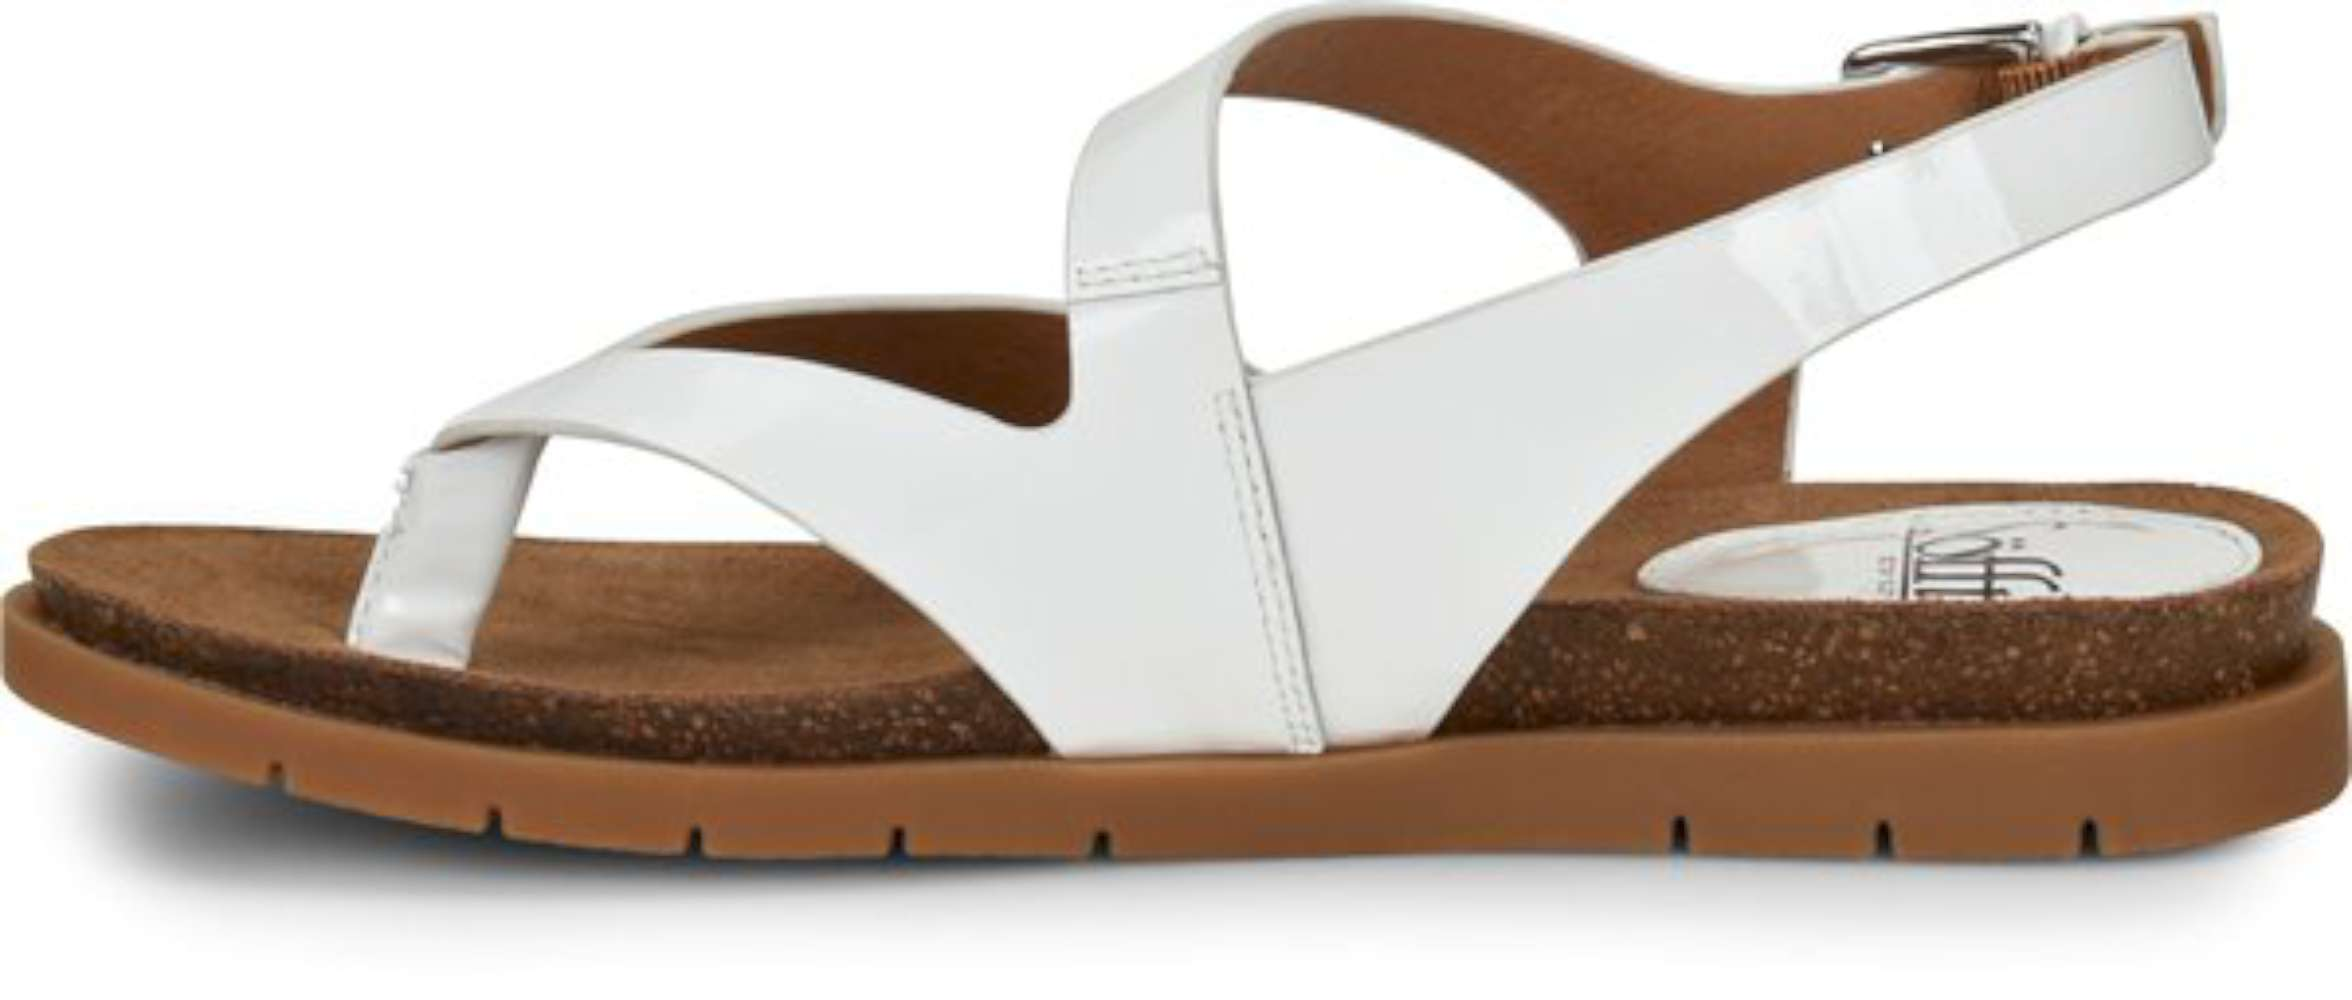 32b8964806 Sofft Womens Rory Leather Open Toe Casual Slingback Sandals, White, Size 6.0